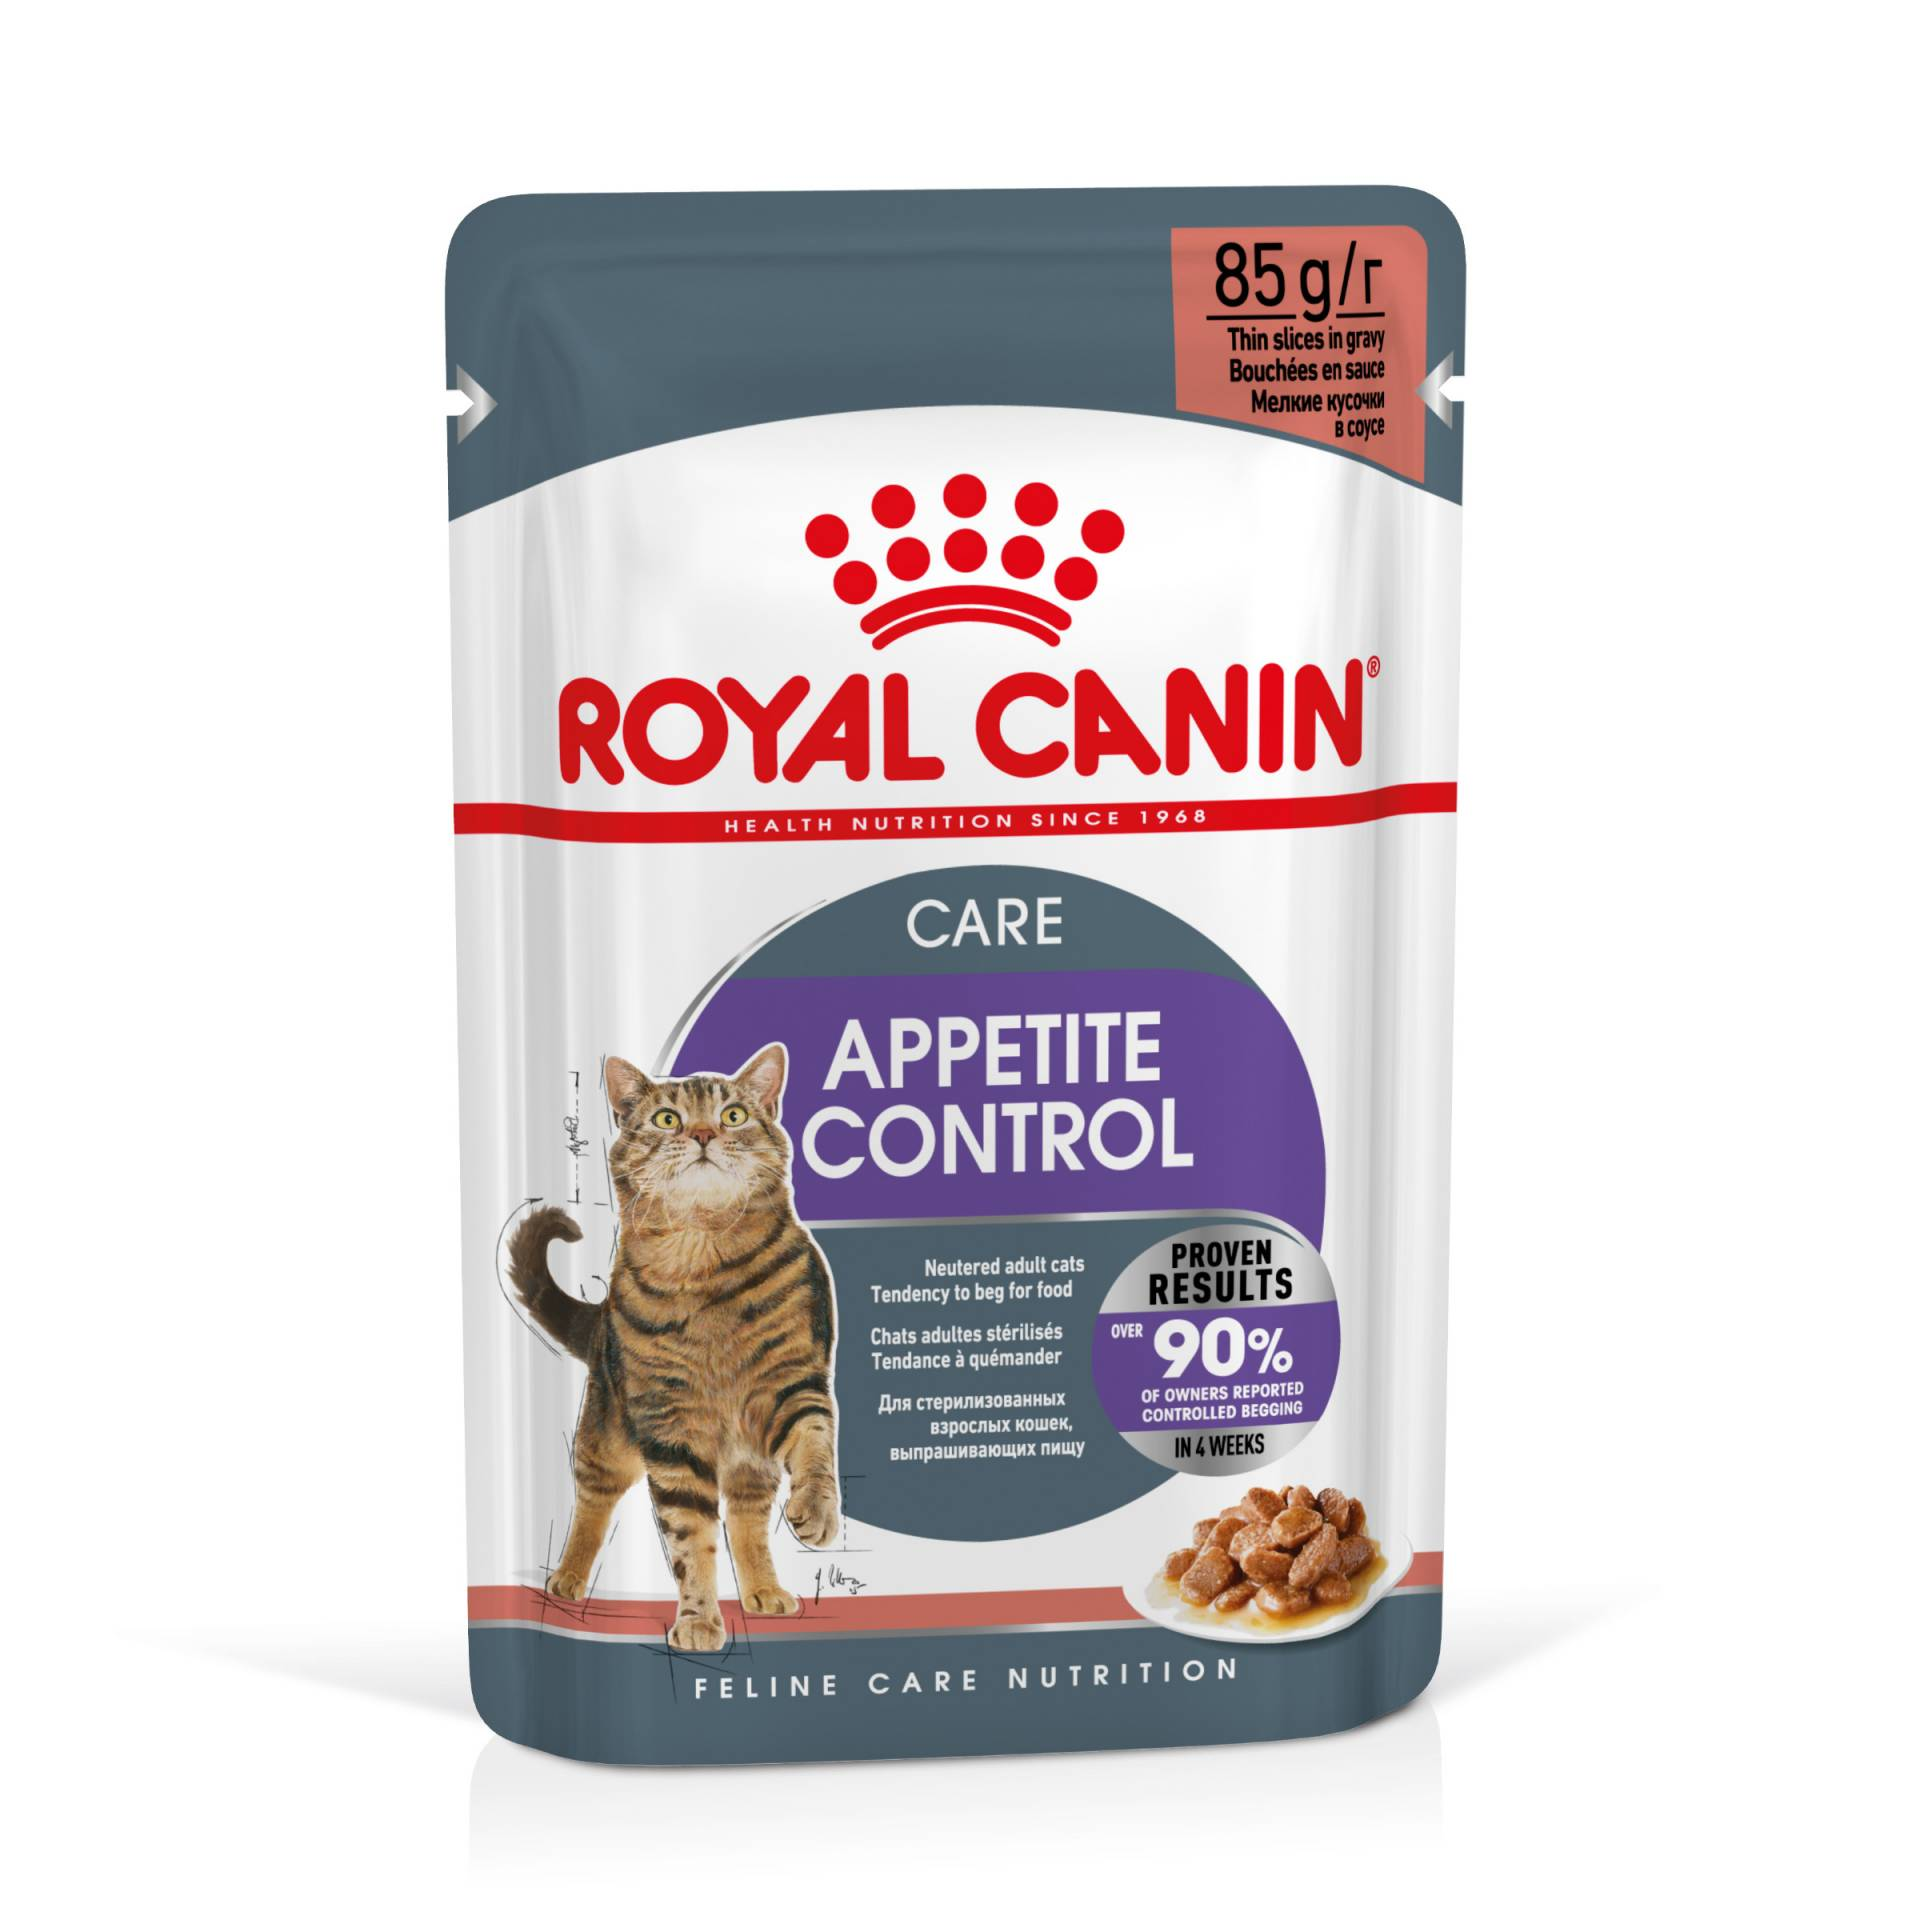 Royal Canin Appetite Control in Soße - 24 x 85 g von Royal Canin